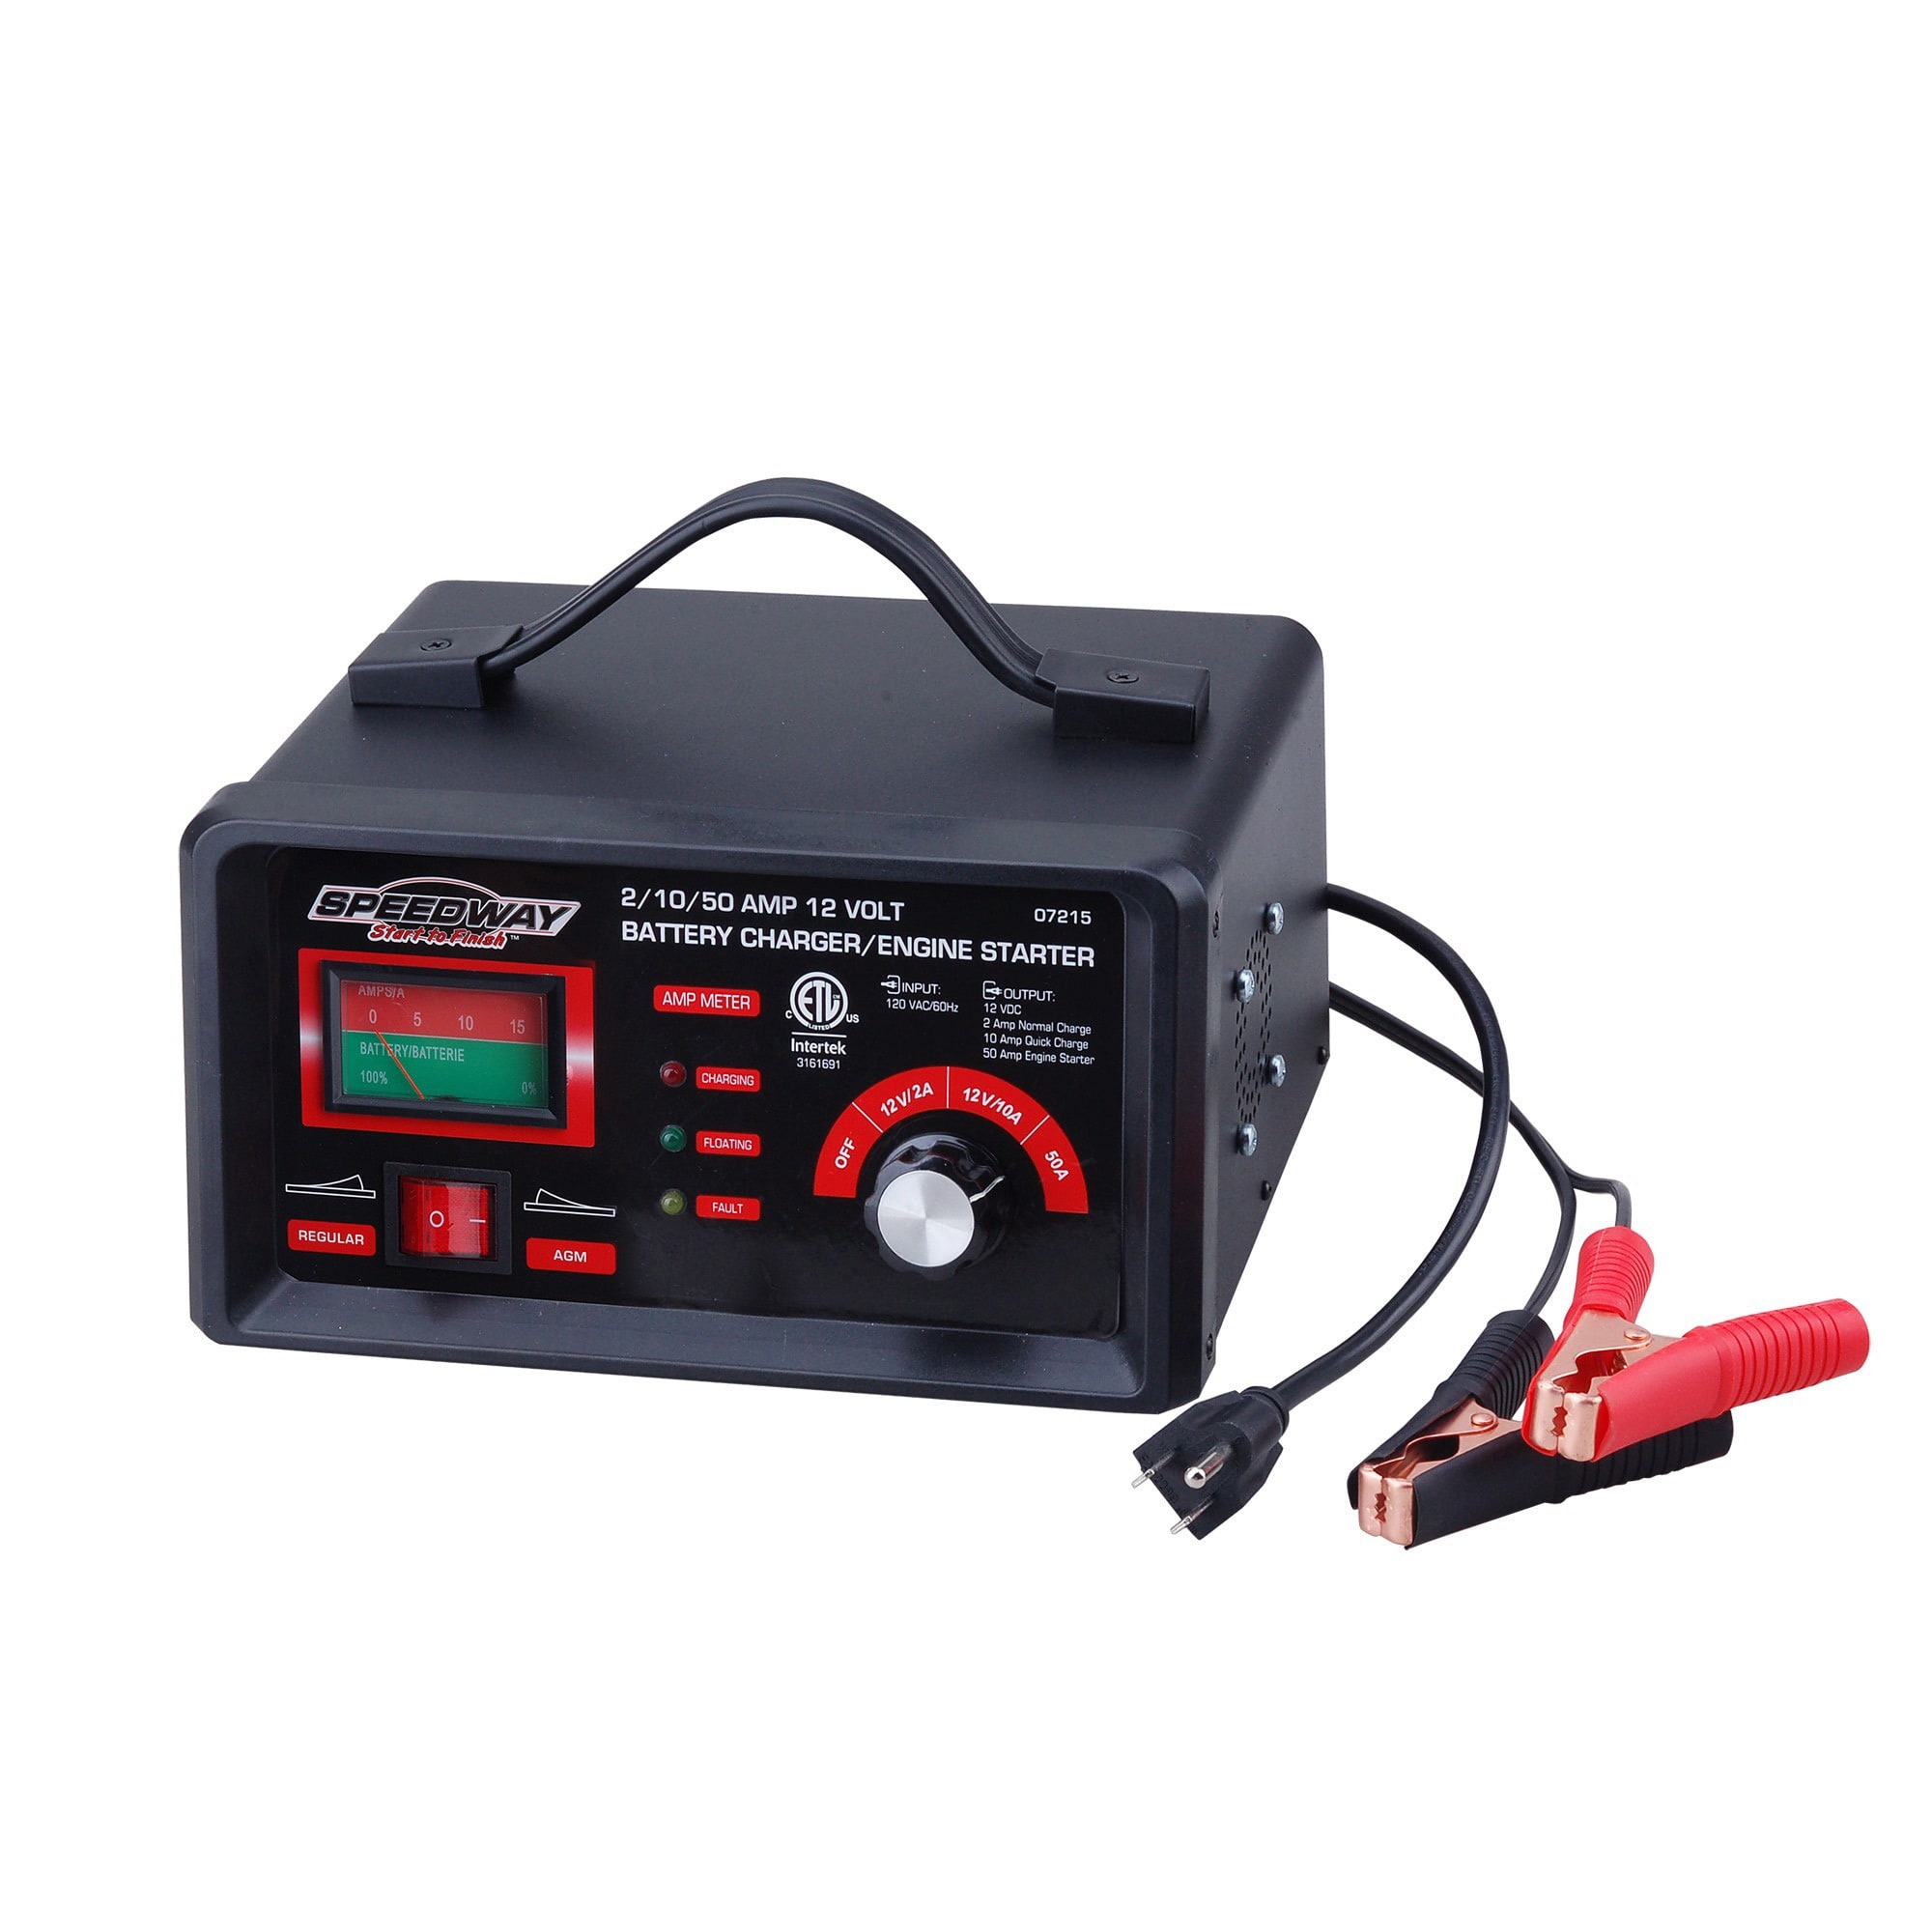 Speedway 2 10 50 AMP 12 Volt Battery Charger  Engine Starter by Speedway